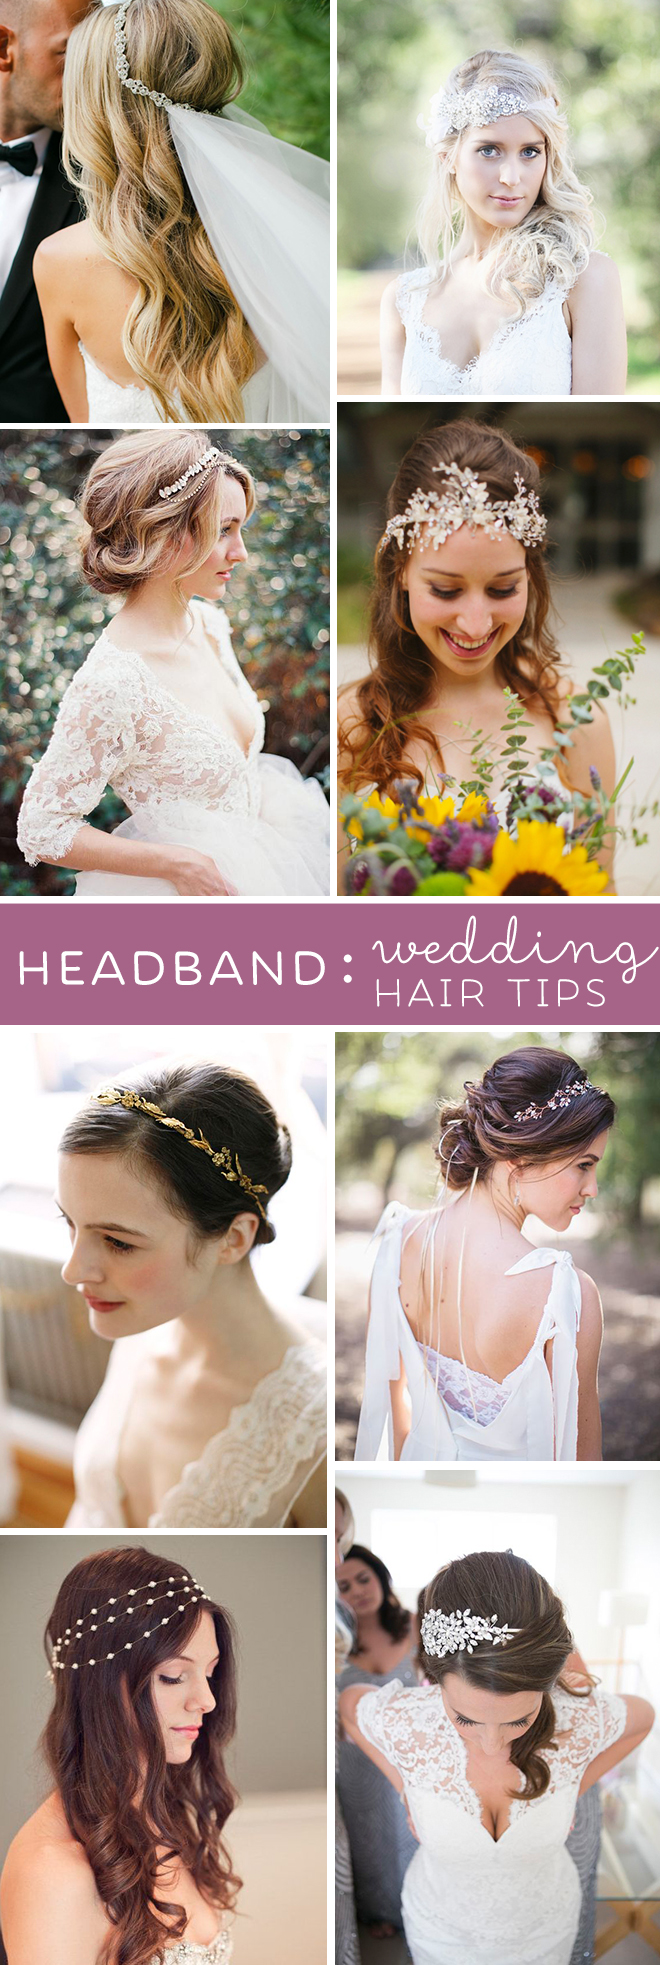 The Best Wedding Hair Tips For Wearing Headbands